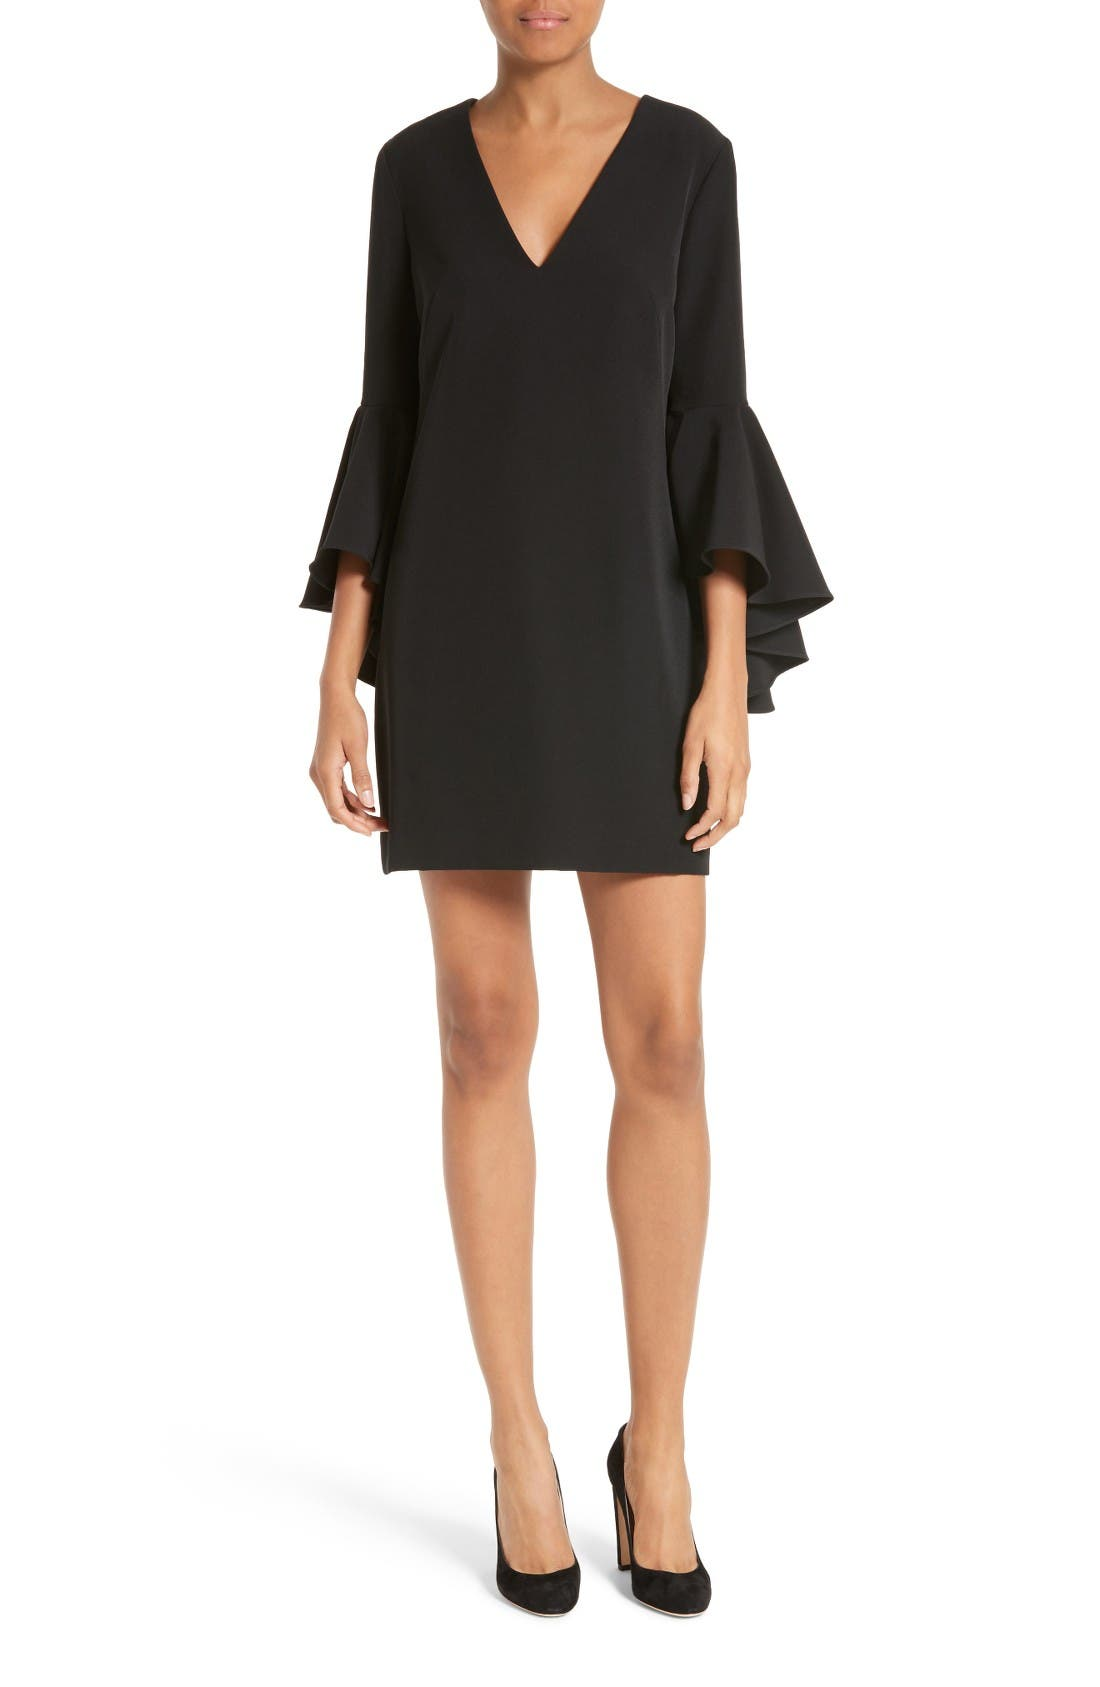 MILLY Nicole Bell Sleeve Dress